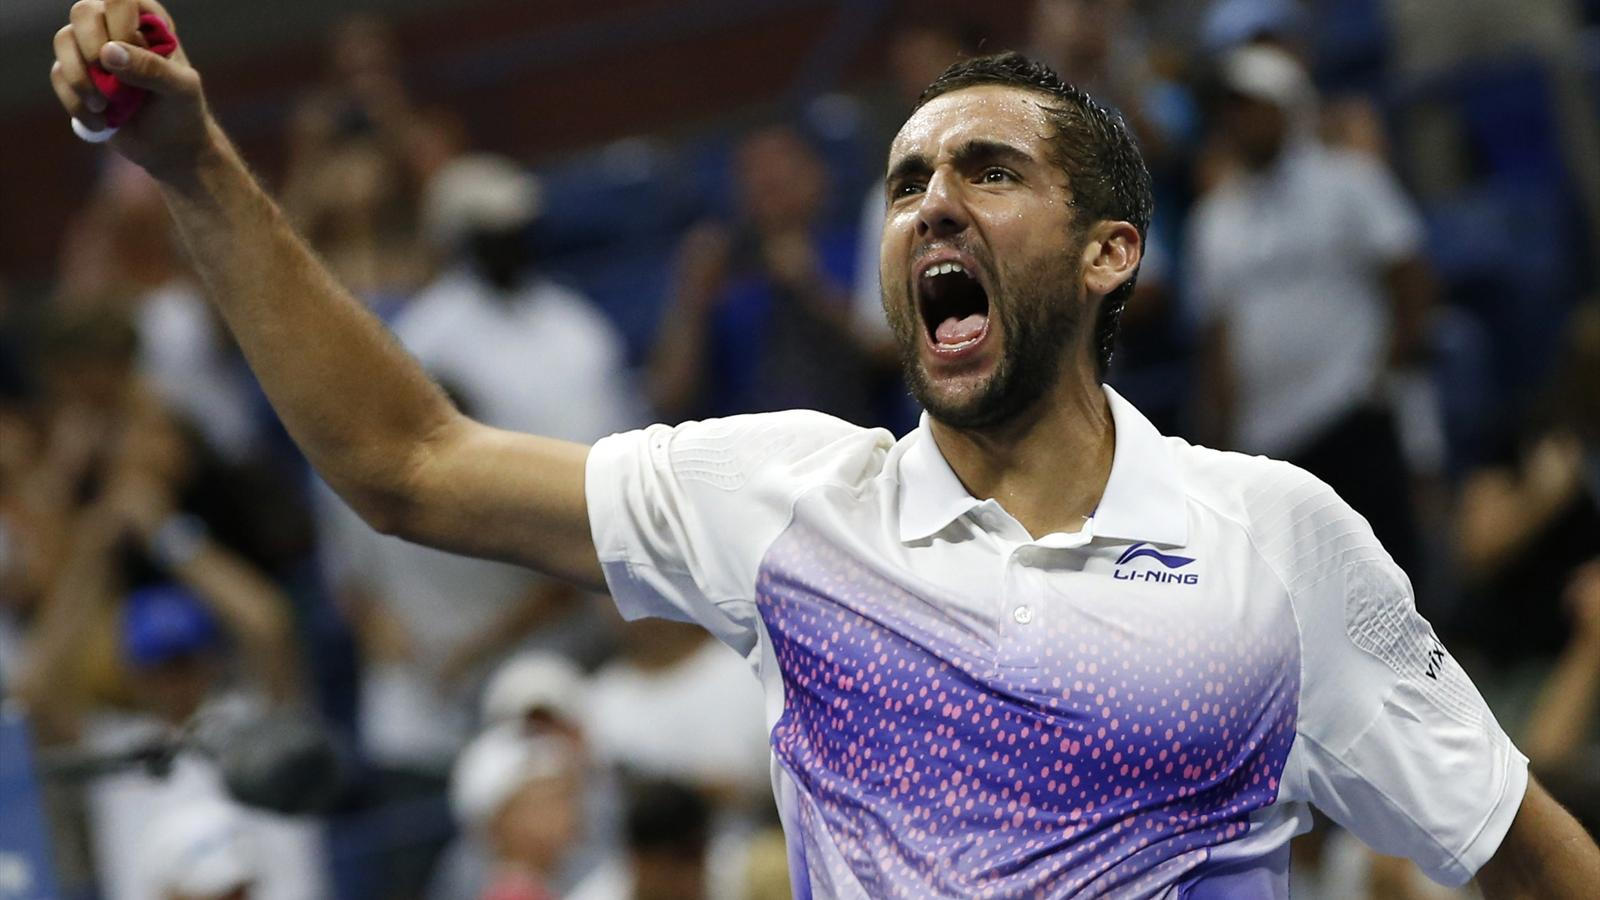 Marin Cilic of Croatia celebrates after defeating Jo-Wilfried Tsonga of France in five sets during their quarterfinals match at the U.S. Open Championships tennis tournament in New York